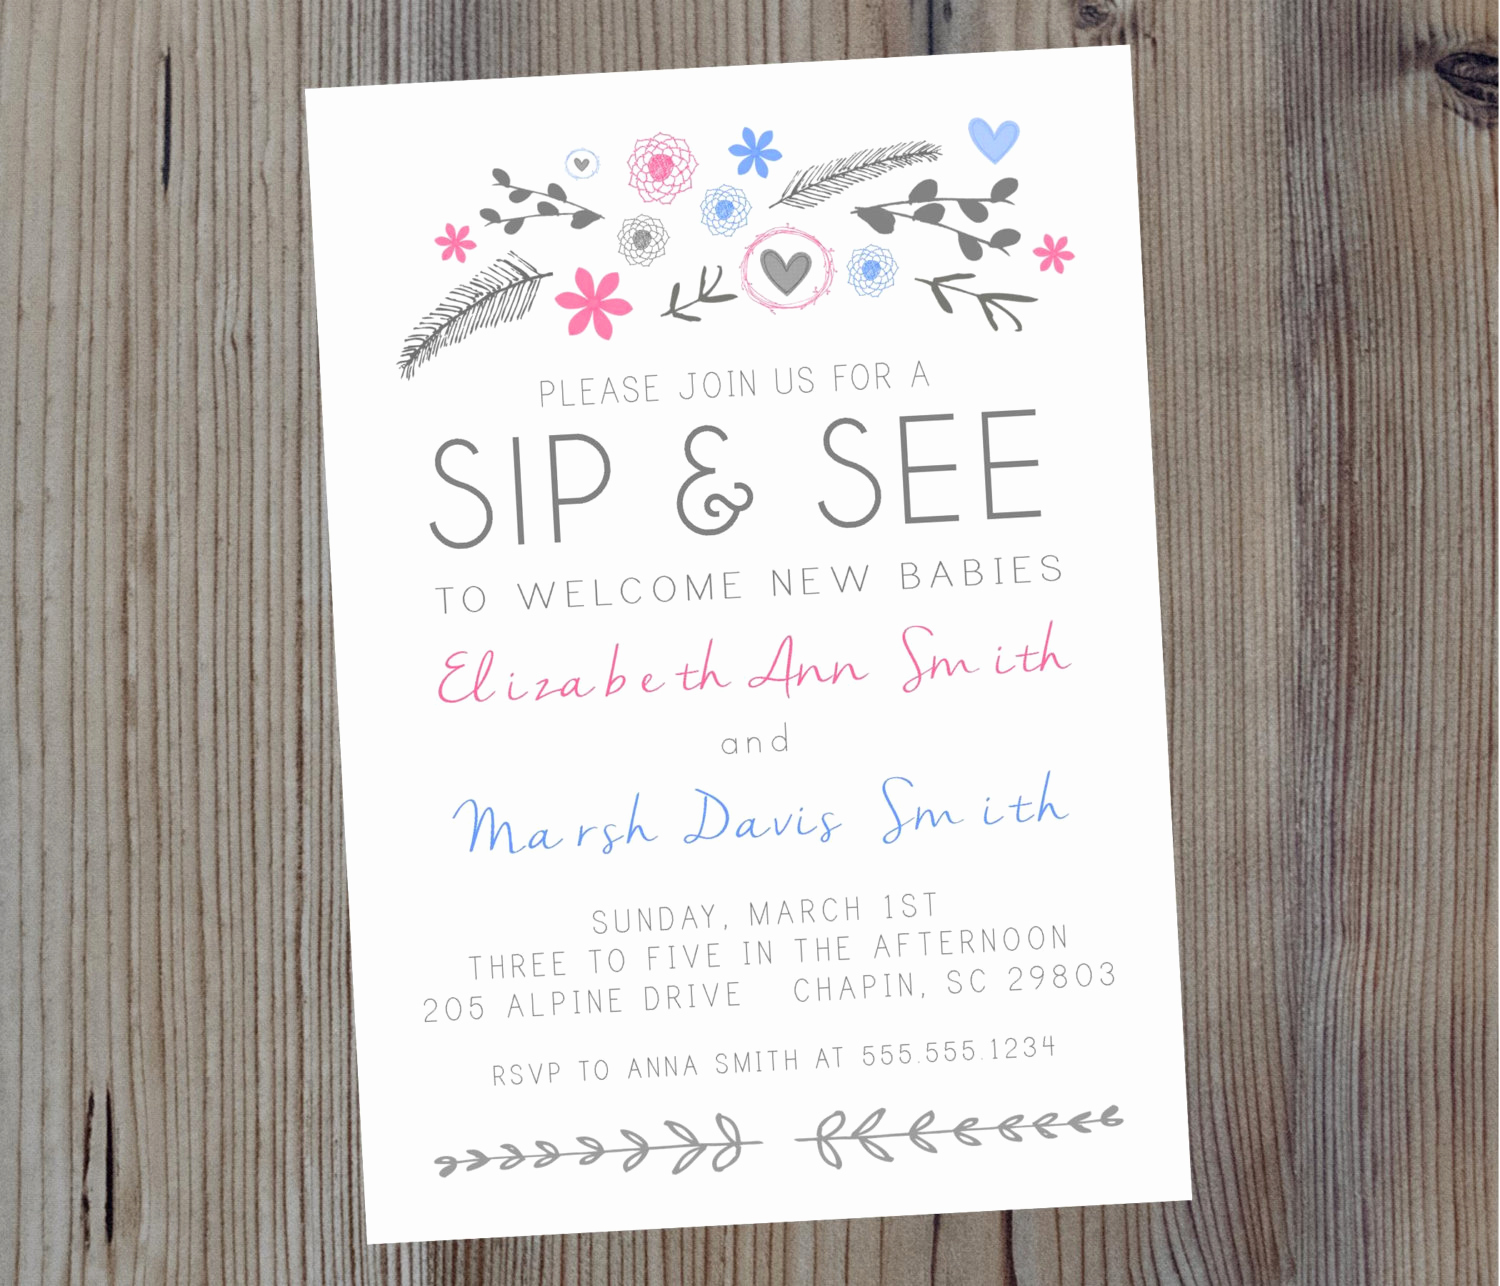 Sip N See Invitation Wording Luxury Floral Sip N See Invitation for Twins or by Sevenstorymountain